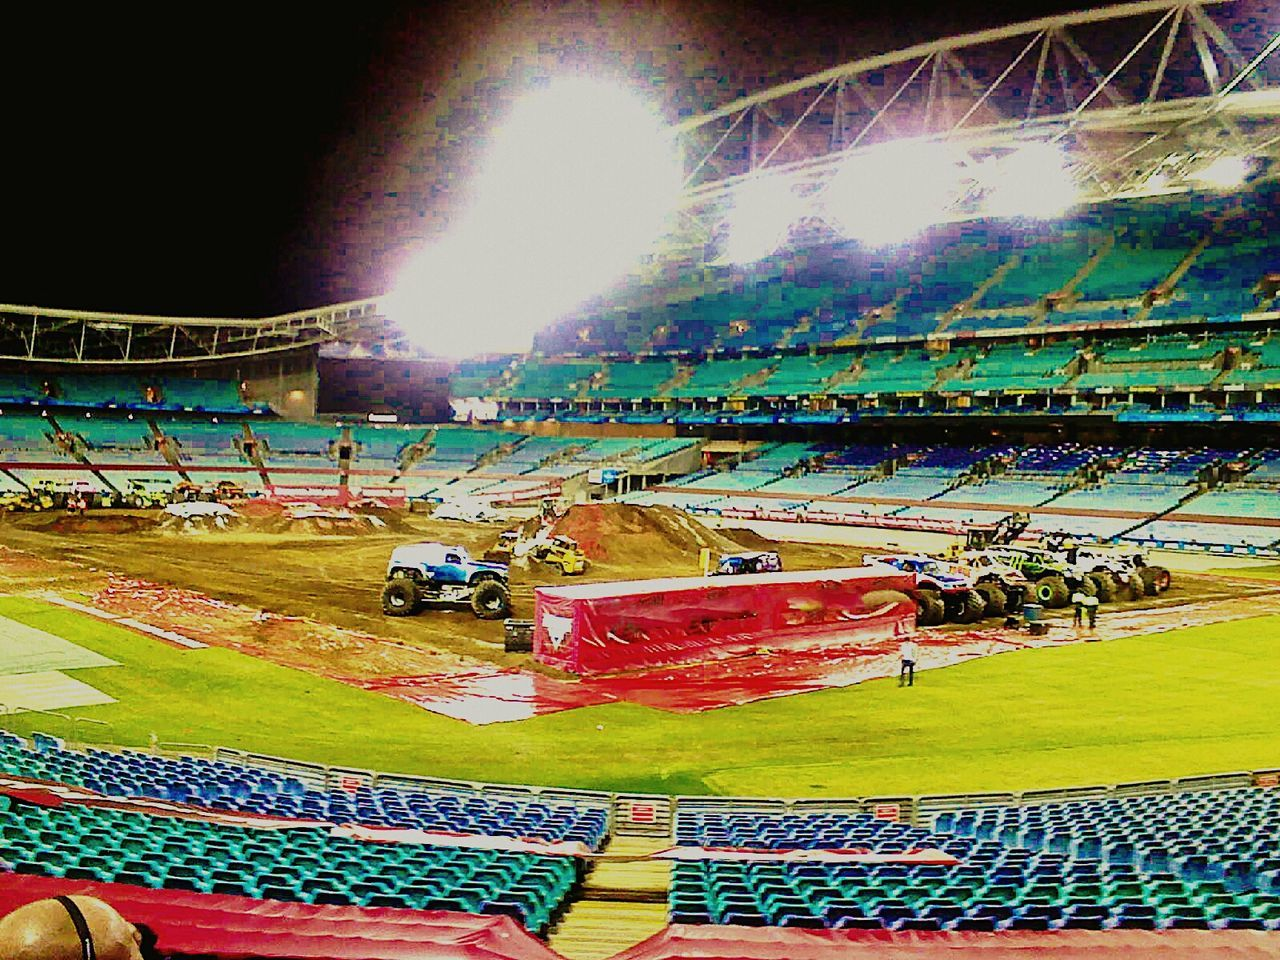 stadium, arts culture and entertainment, crowd, large group of people, sport, outdoors, real people, sports track, motorsport, auto racing, day, fan - enthusiast, sky, people